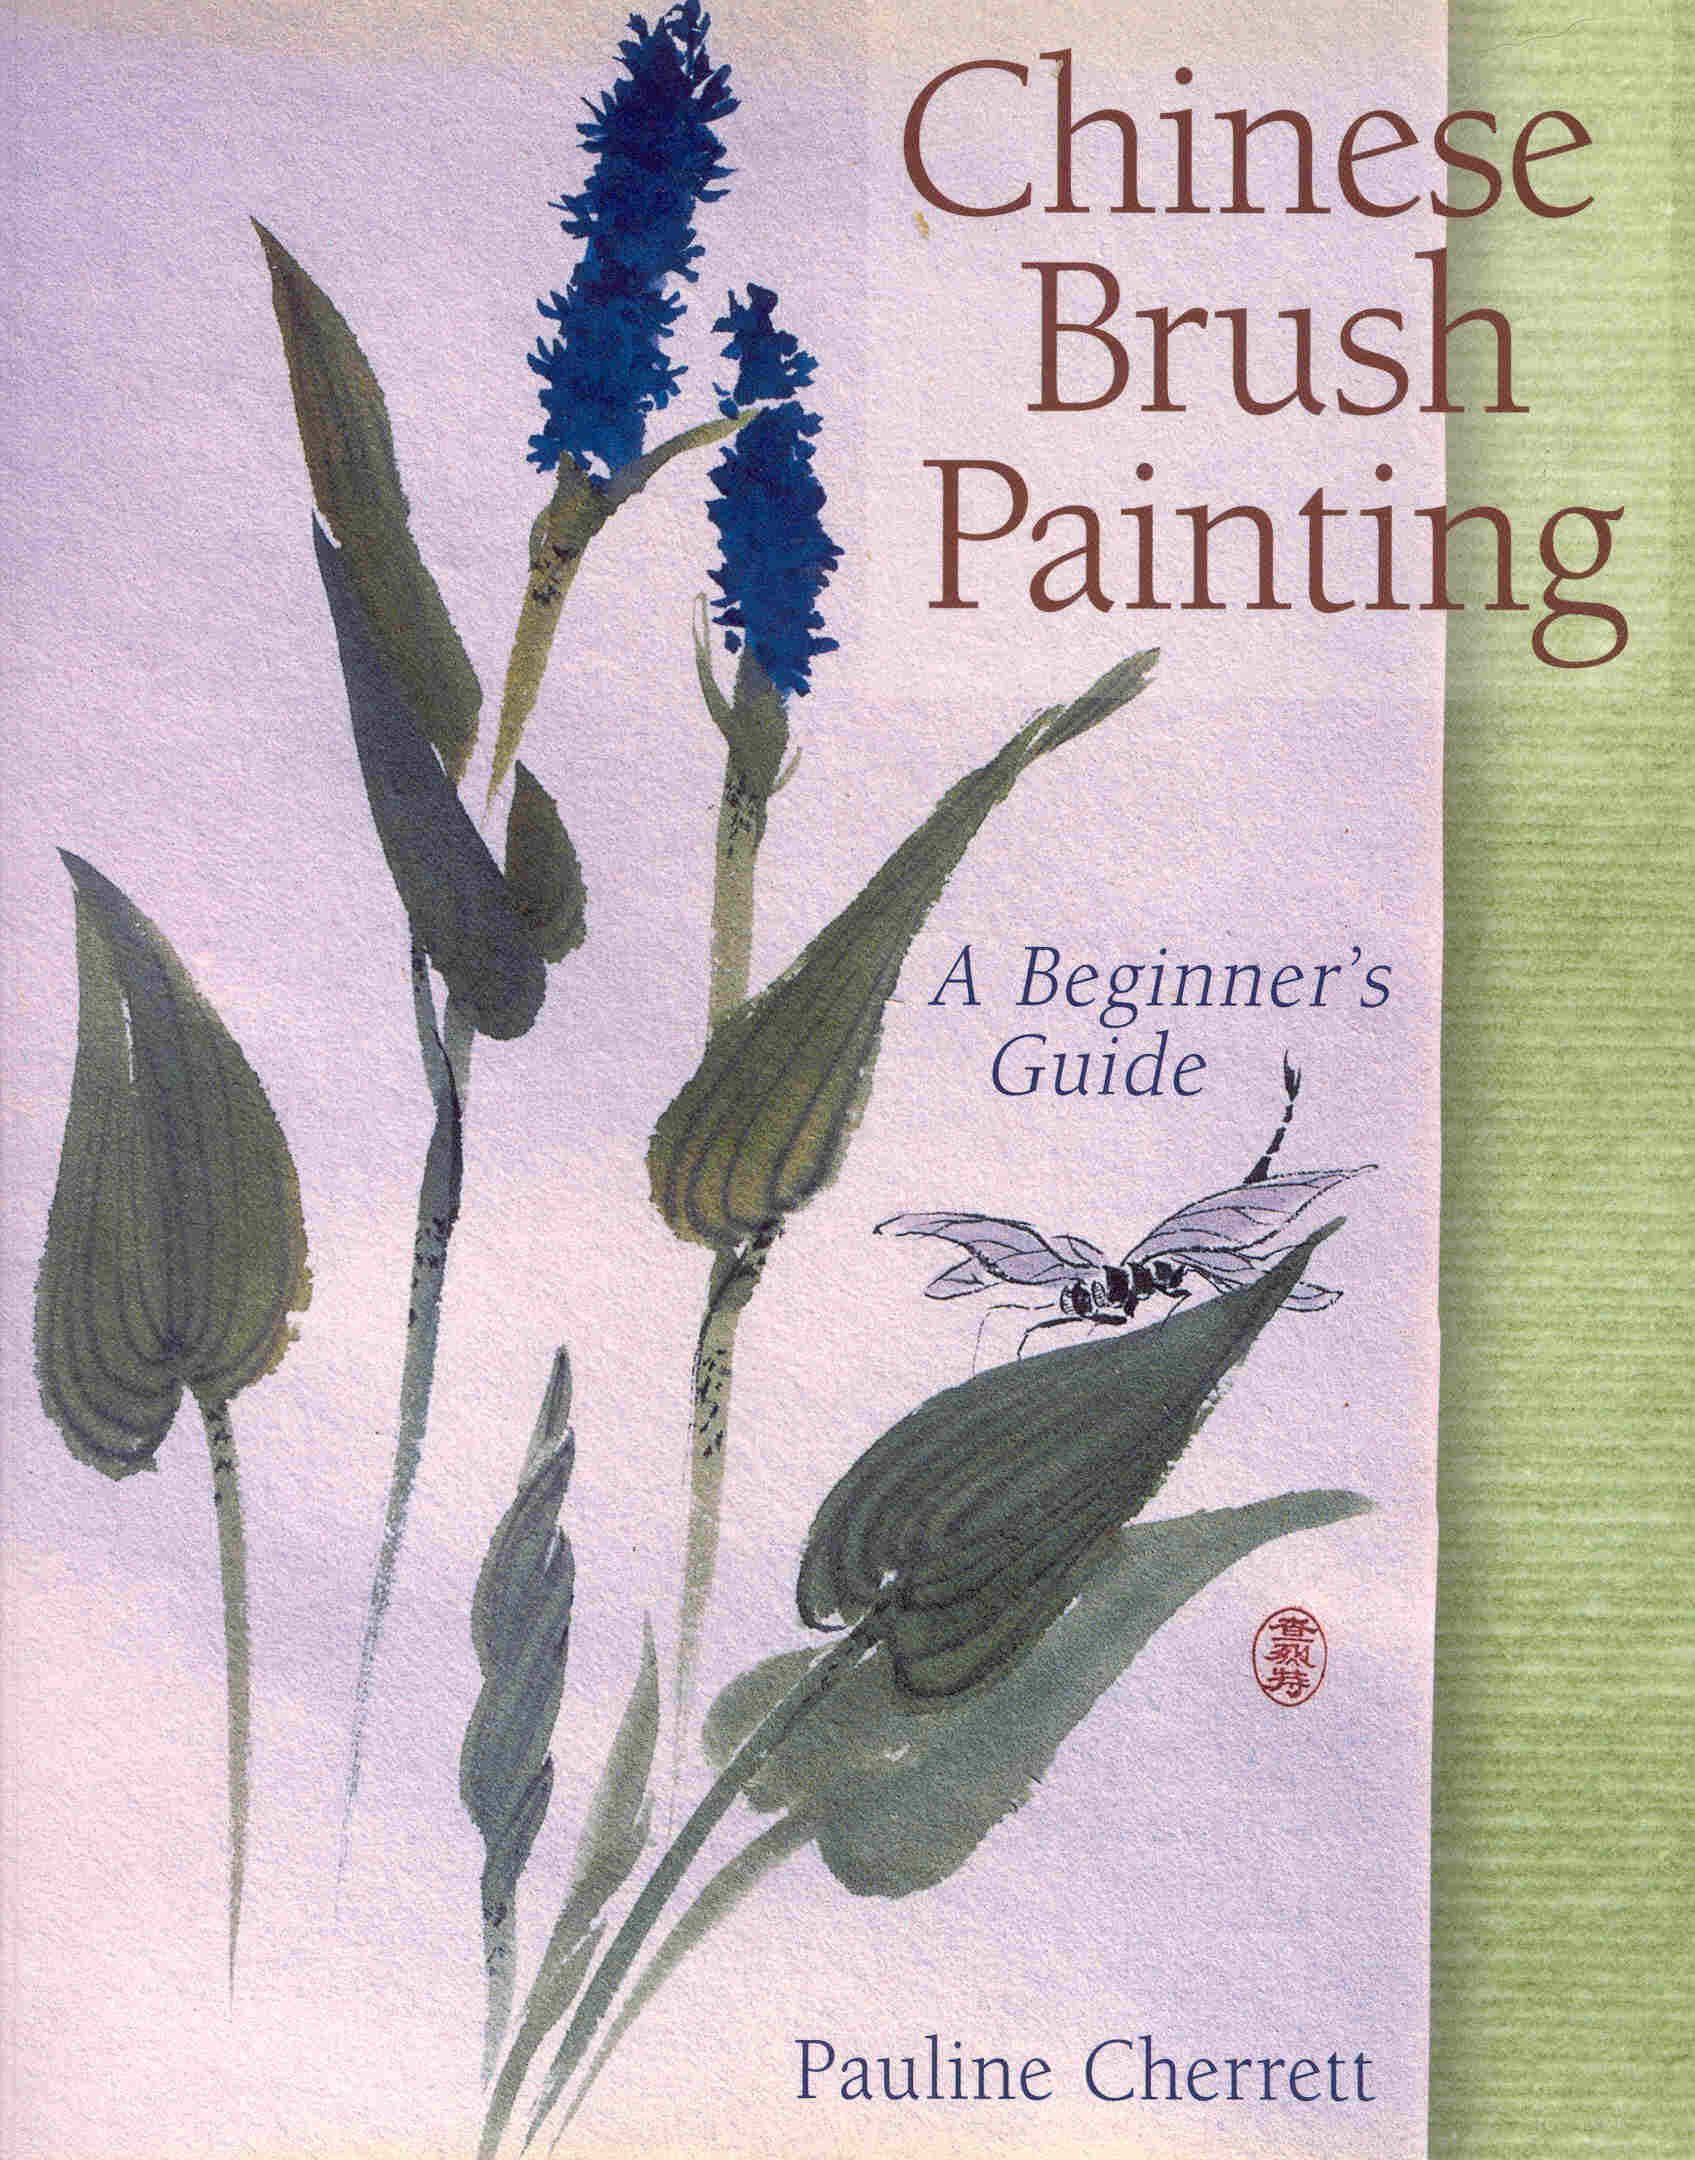 Book Cover Watercolor Brush : The tools of chinese brush painting think crafts by